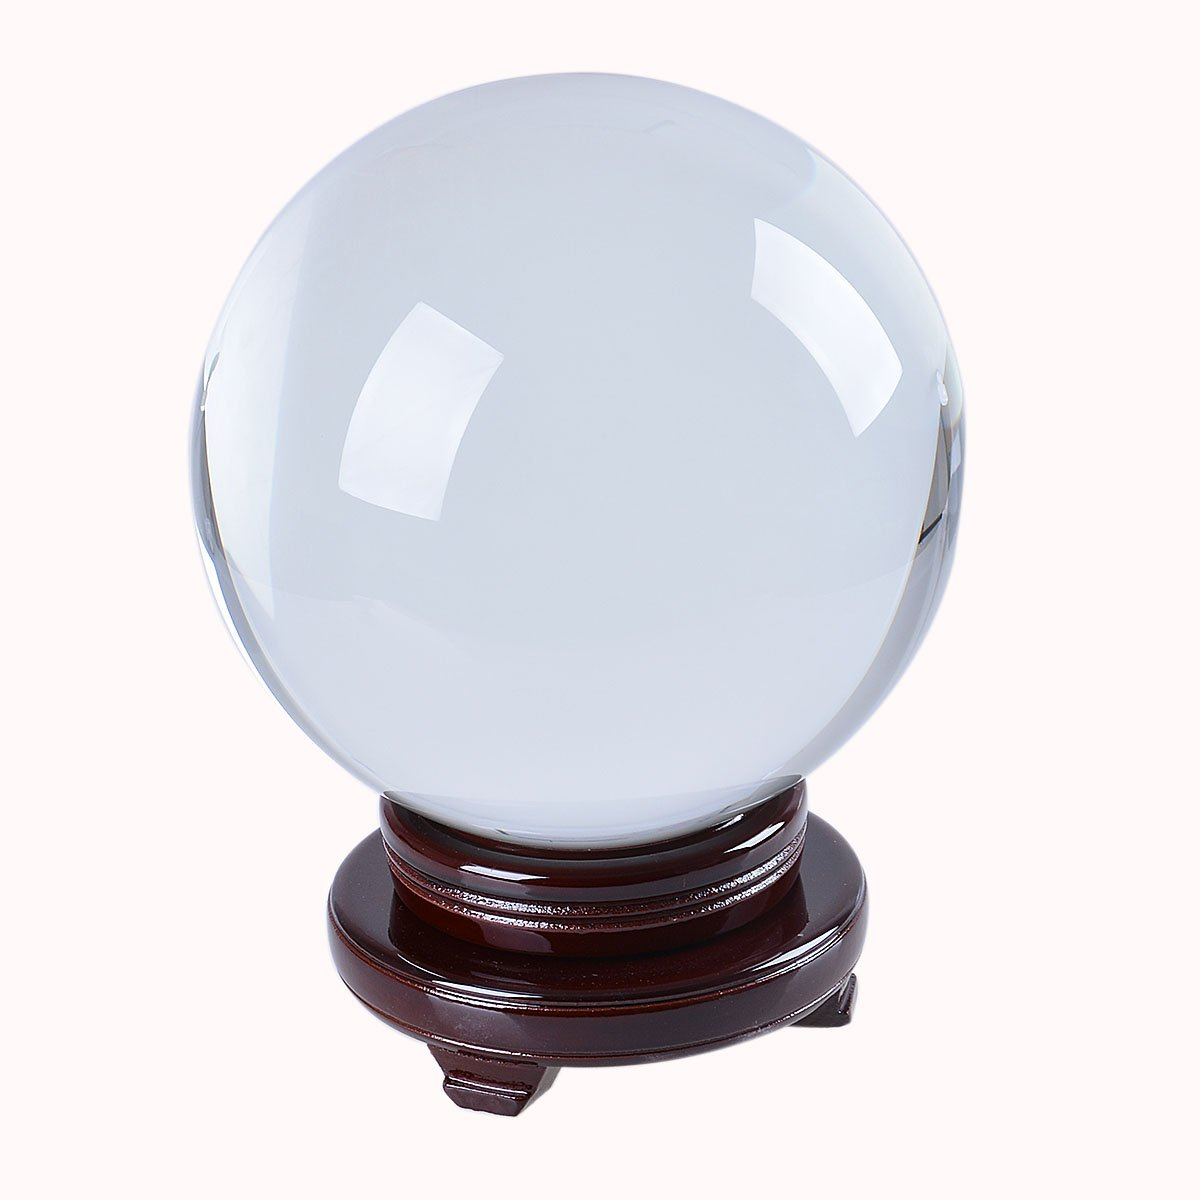 LONGWIN Huge Clear Divination Crystal Ball 200mm (8 Inch) Glass Sphere Free Wooden Stand Home Decoration Ornaments